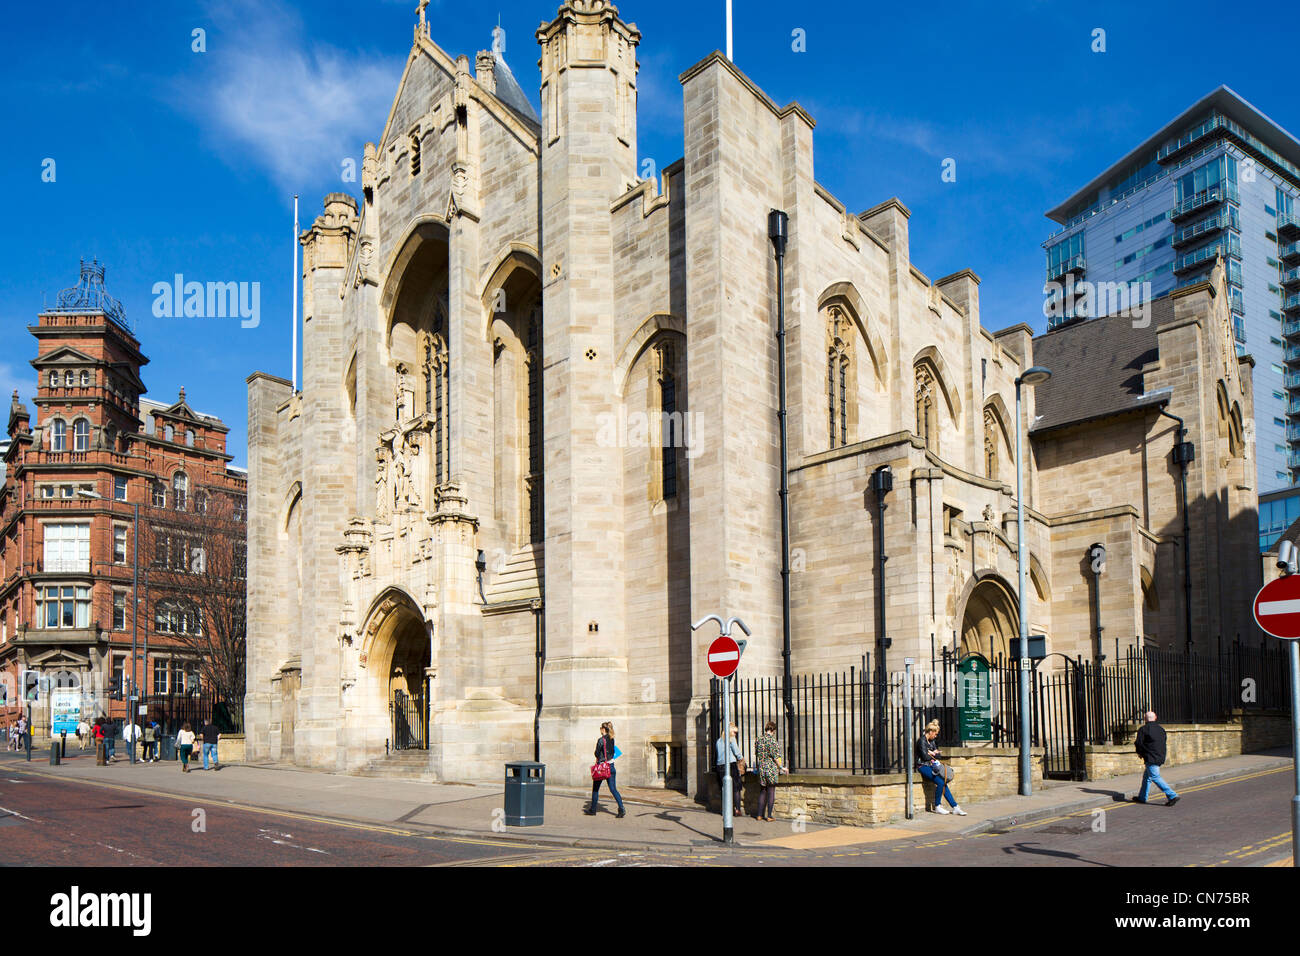 Leeds Roman Catholic Cathedral (Saint Anne's Cathedral), Leeds, West Yorkshire, England - Stock Image